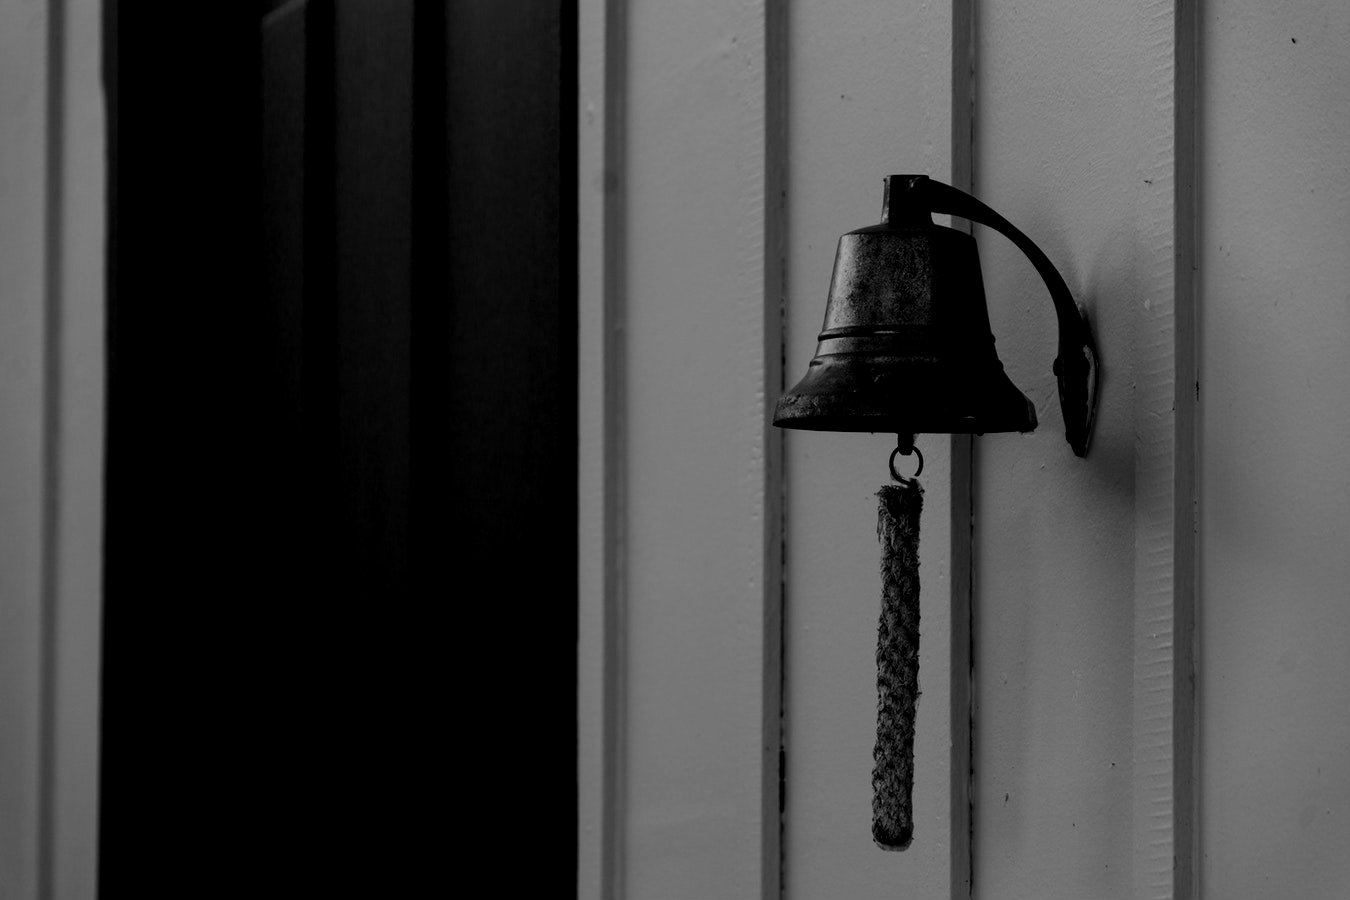 Lone Bell Chime - An abstract take on a vintage bell chime echoing into the unknown. This soundscape portrays nostalgia but also creates a sense of uneasiness as the sound starts to fade away over time.Down At The MomentJanuary 27th 2019